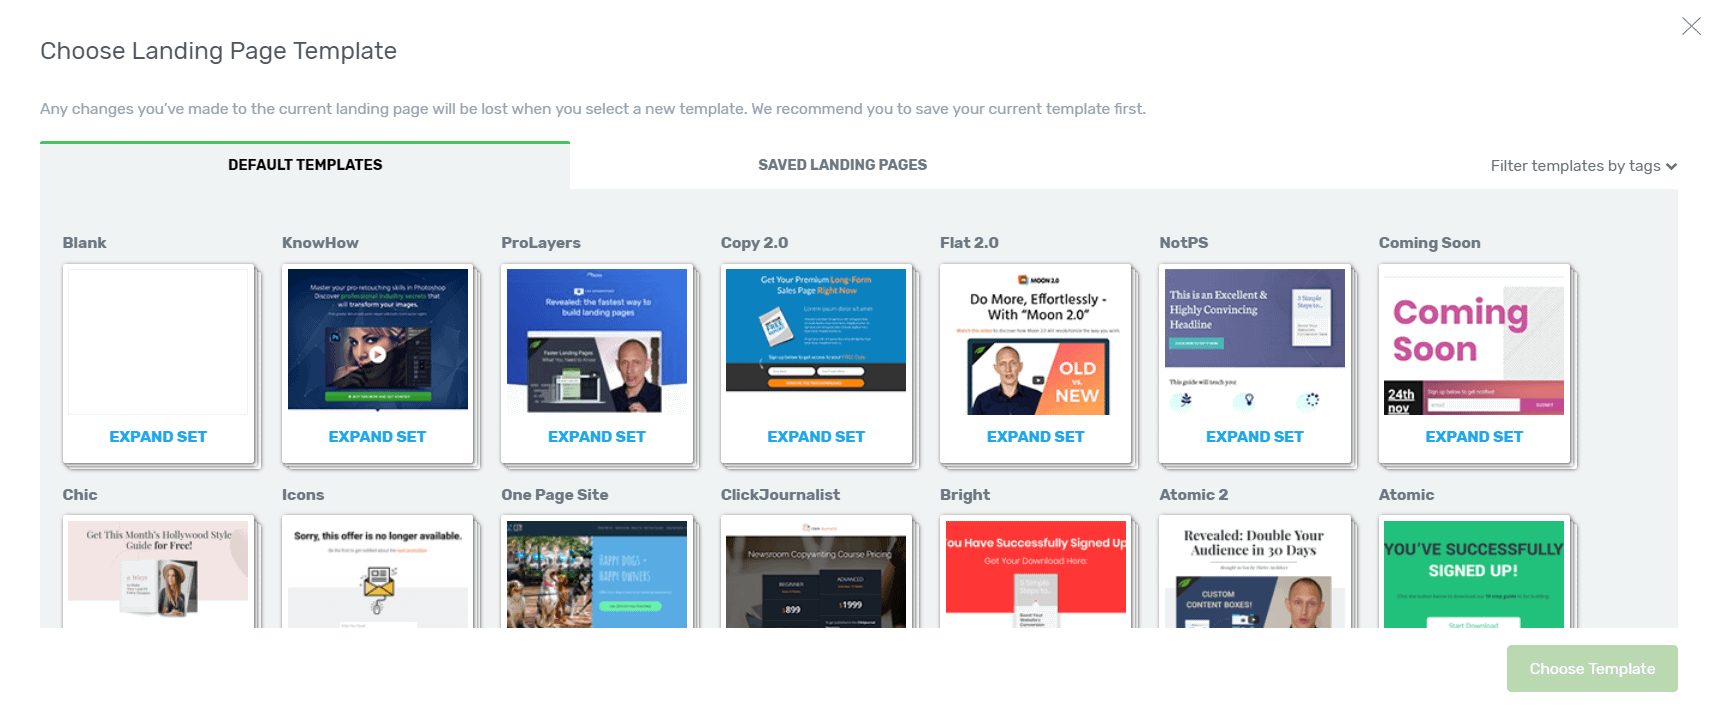 select a landing page